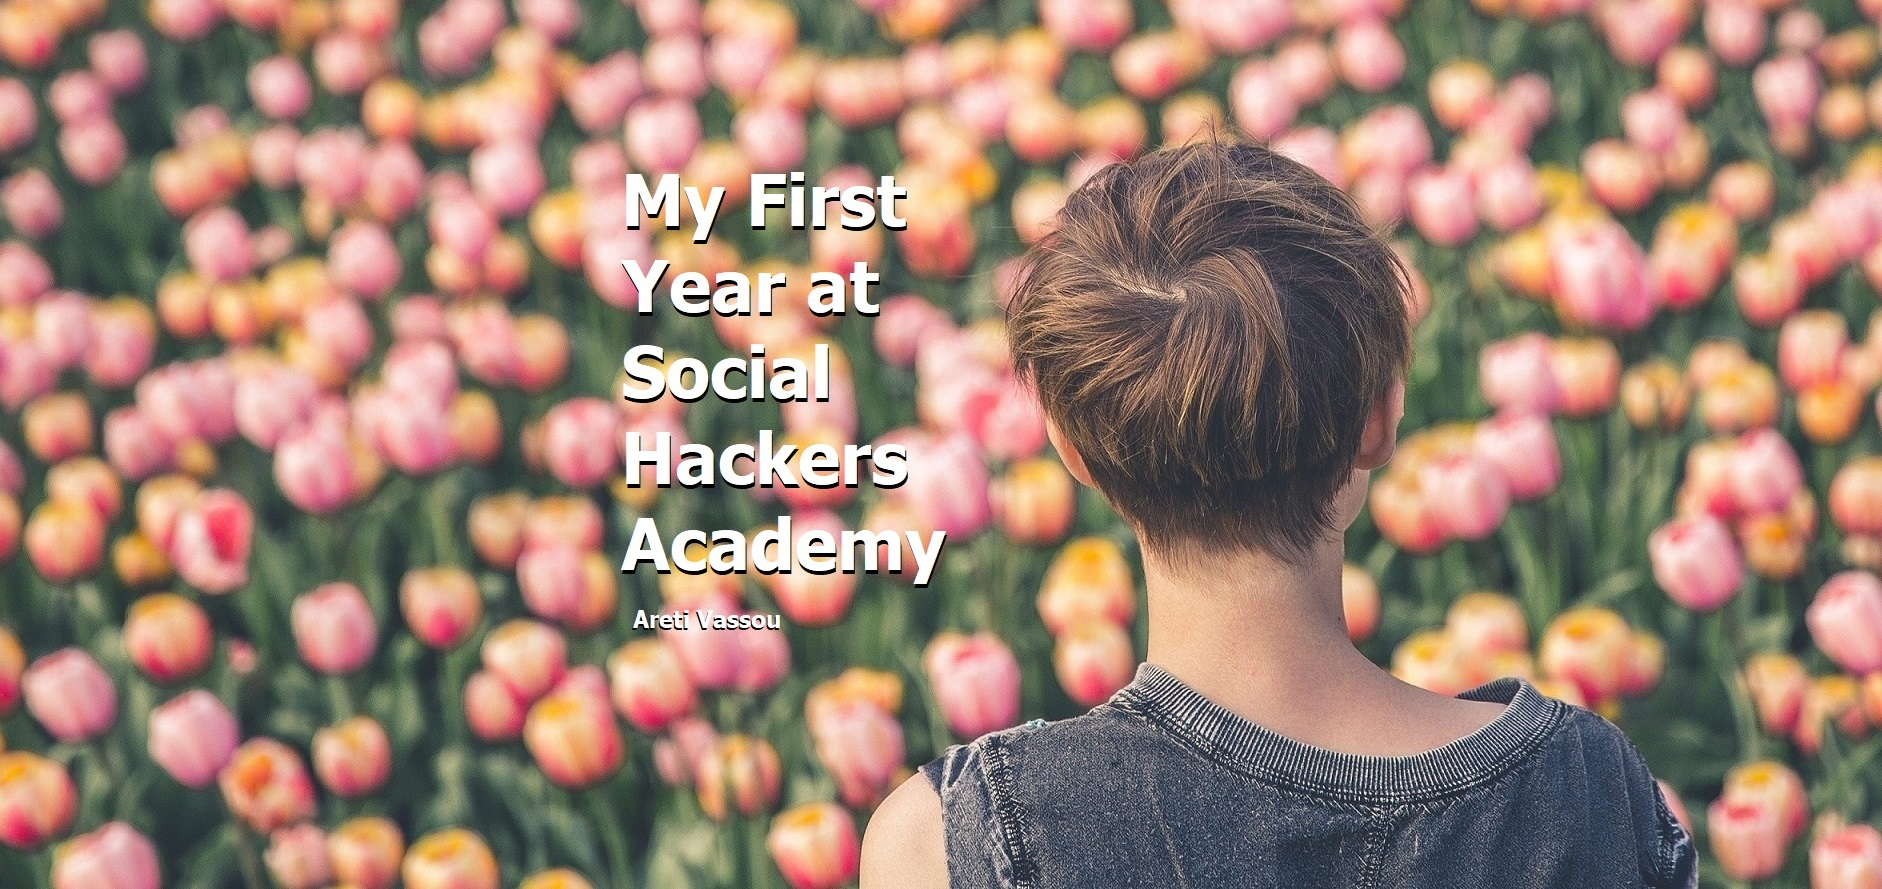 My First Year at Social Hackers Academy